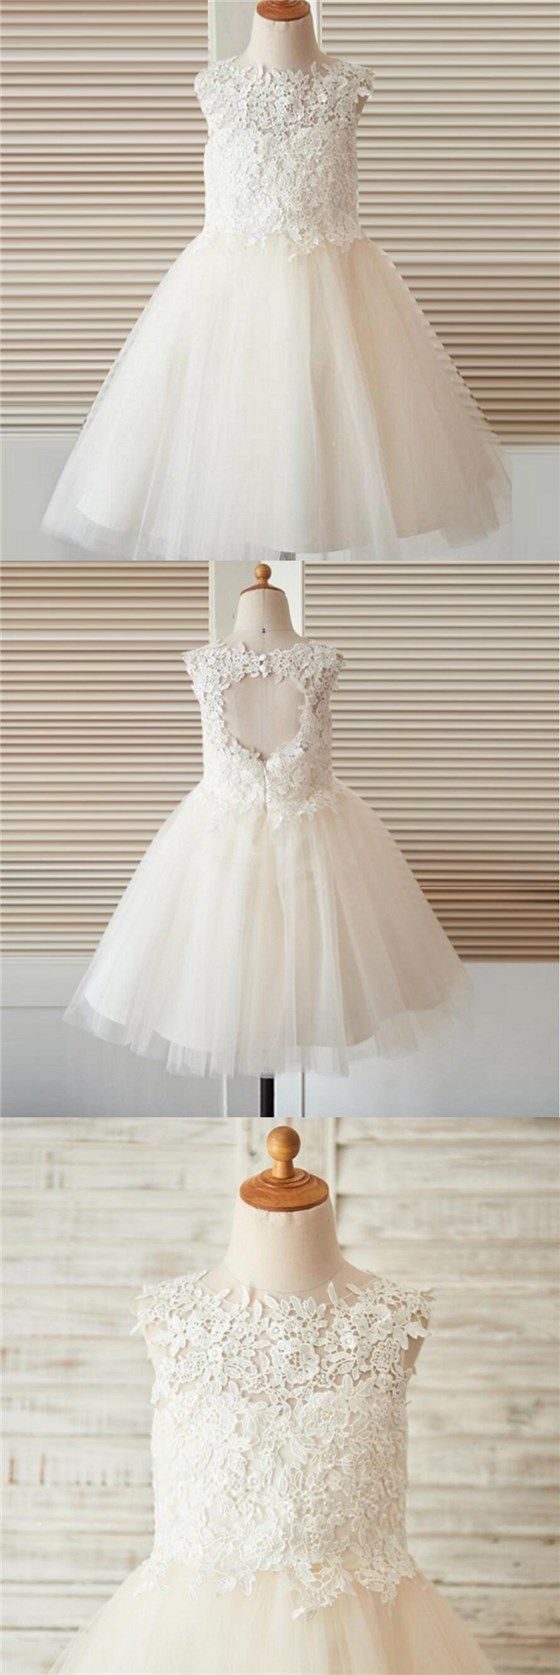 Best 25 junior bridesmaid dresses ideas on pinterest styles of open back top lace flower girl dresses for 2018 wedding best sale junior bridesmaid dresses ombrellifo Images